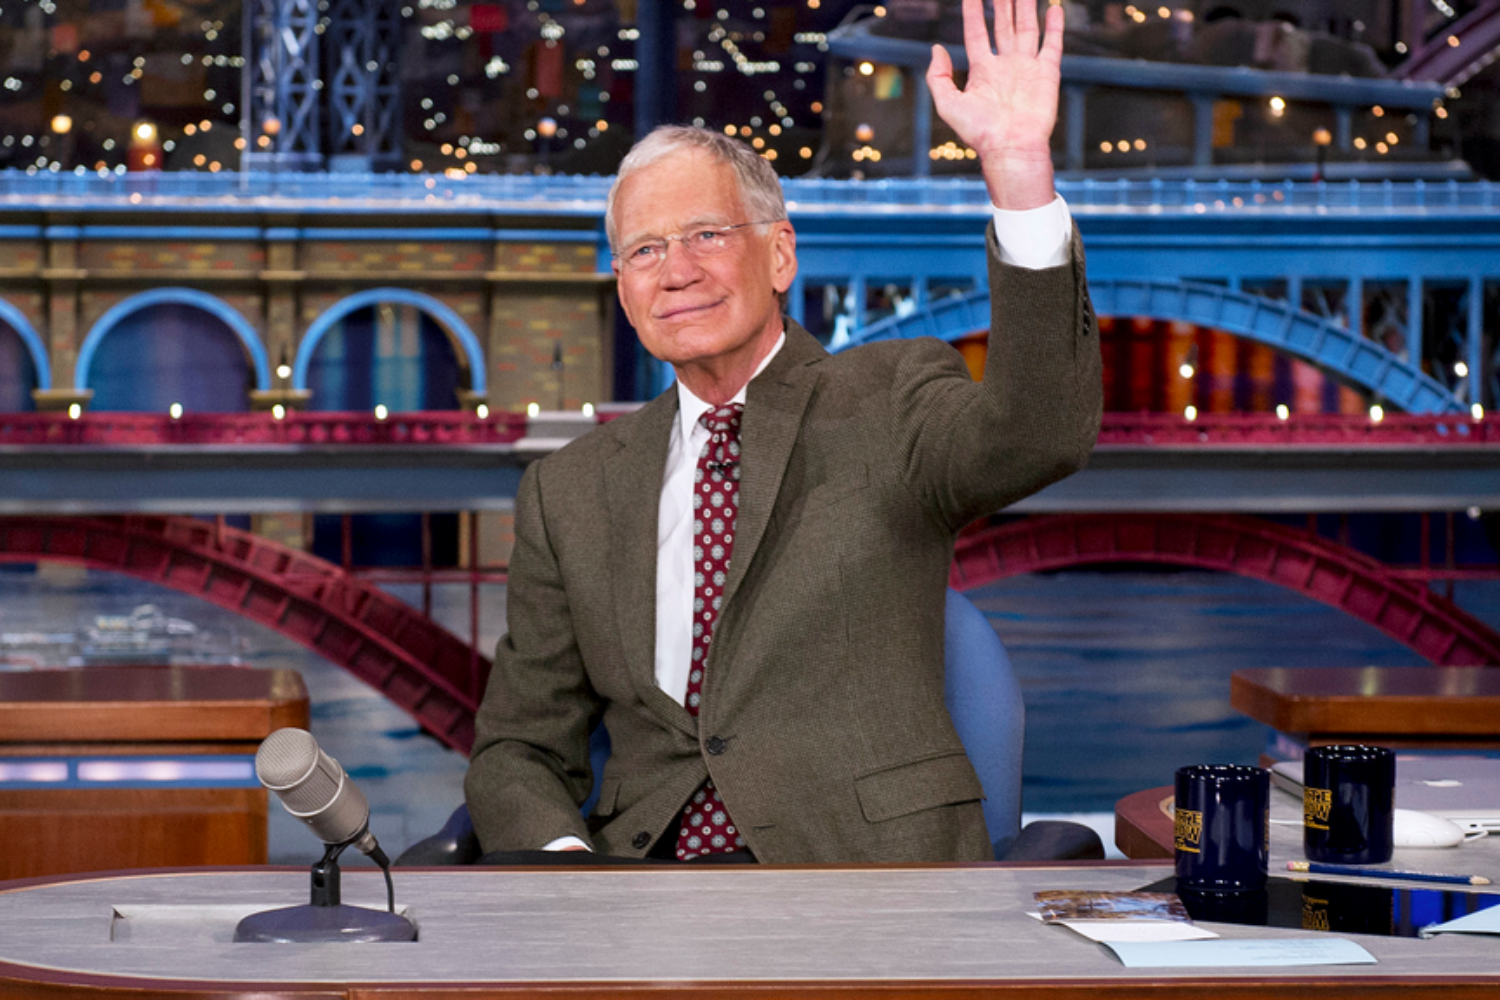 Laters, Letters: David Letterman's most iconic Late Show performances